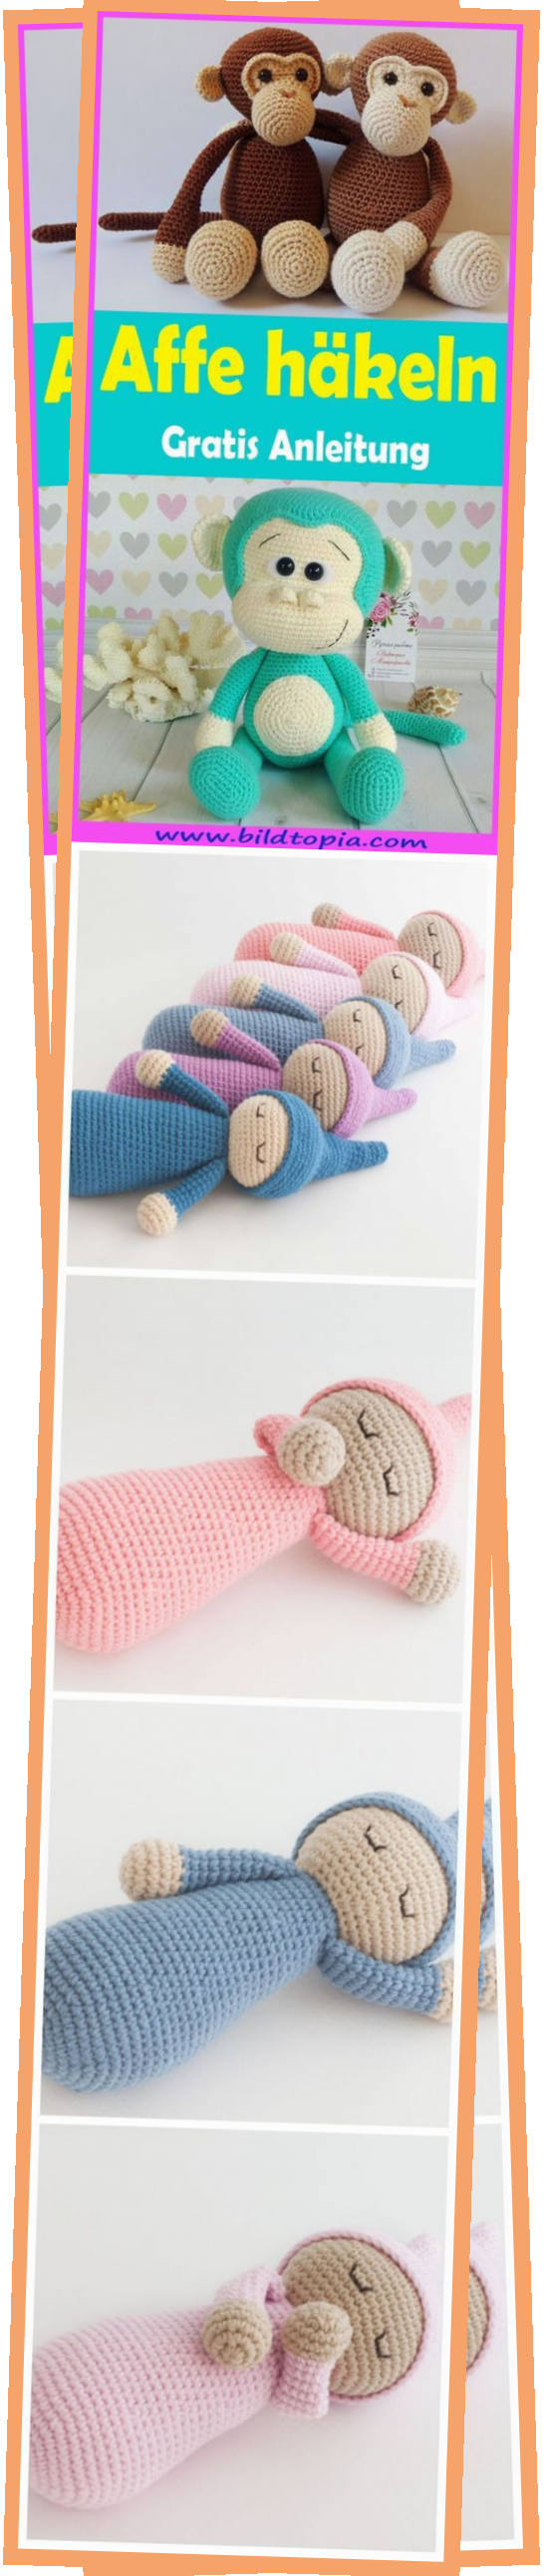 Photo of Monkey Crochet Free Simple Instructions – Crochet – Instructions – Af